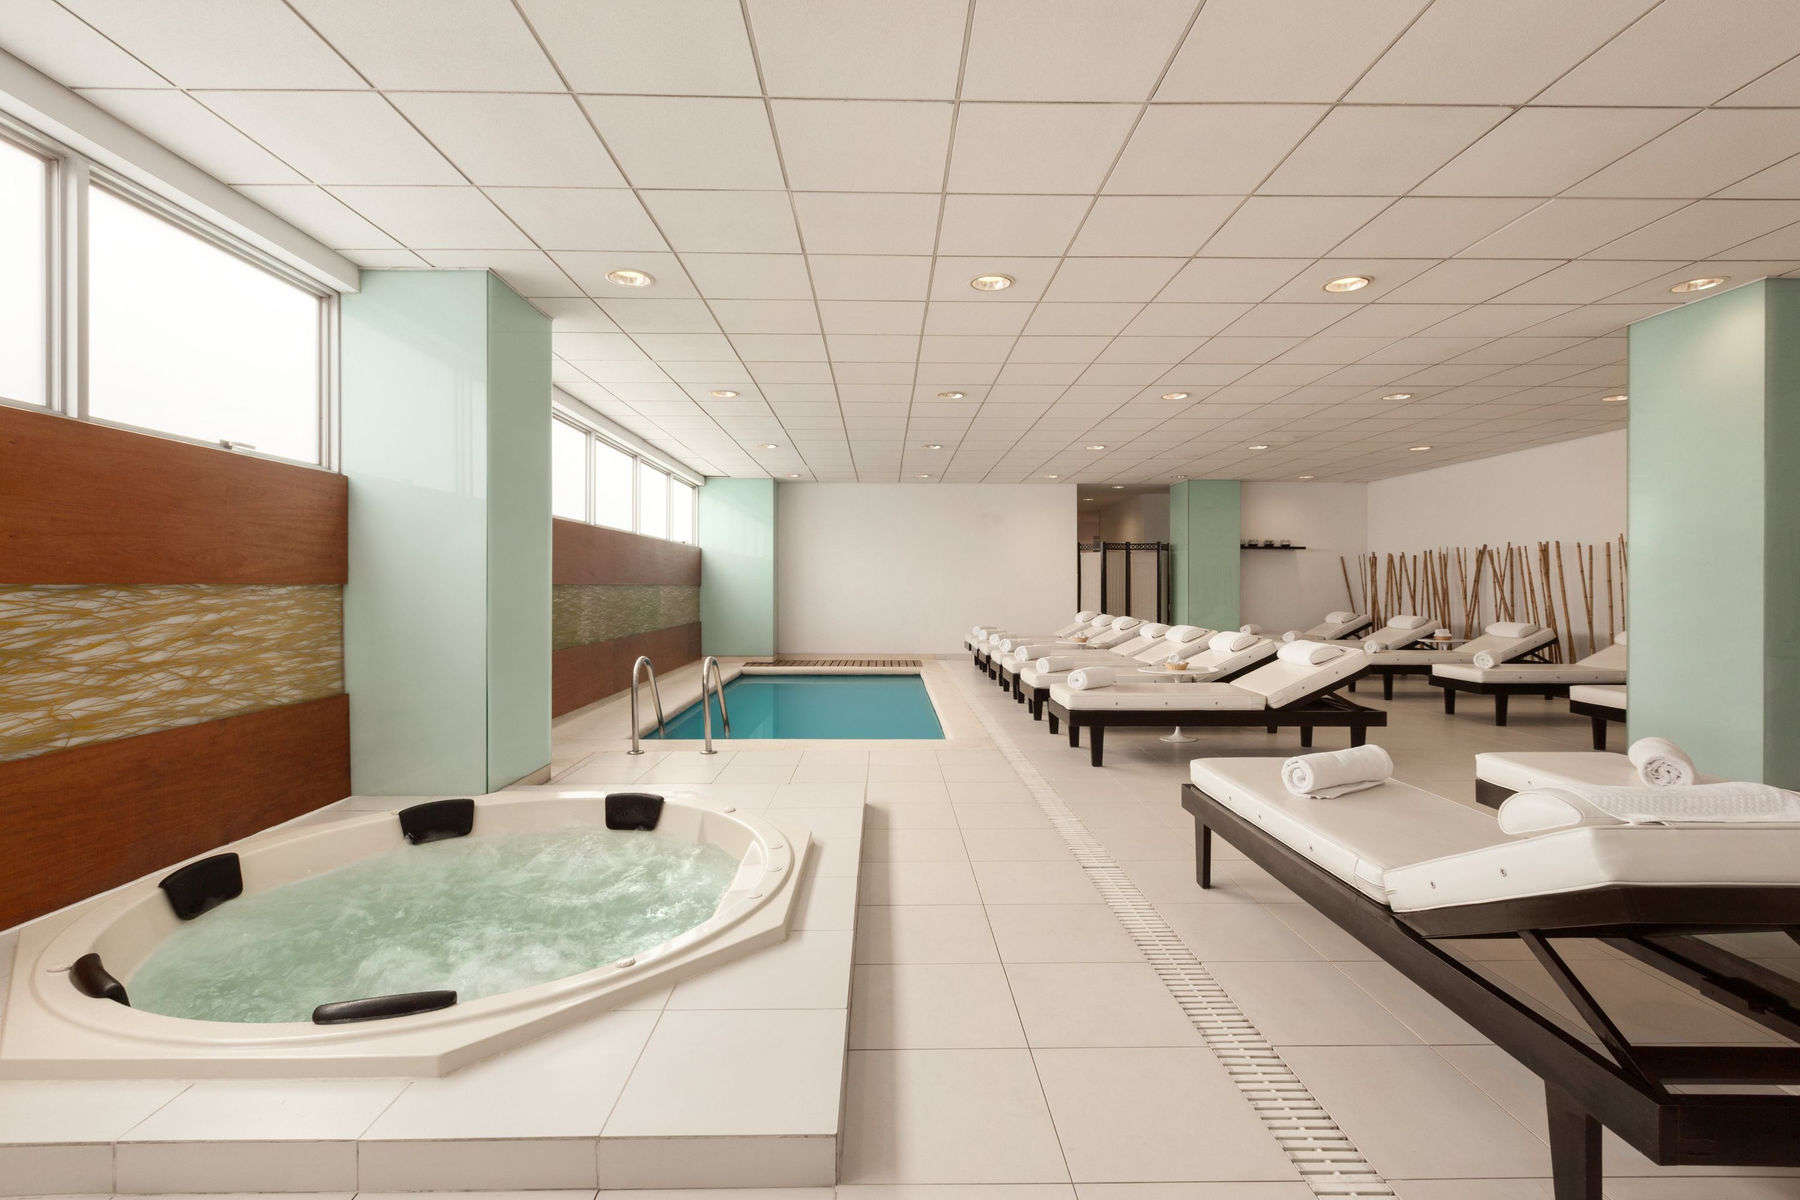 Lima Airport Hotel Spa